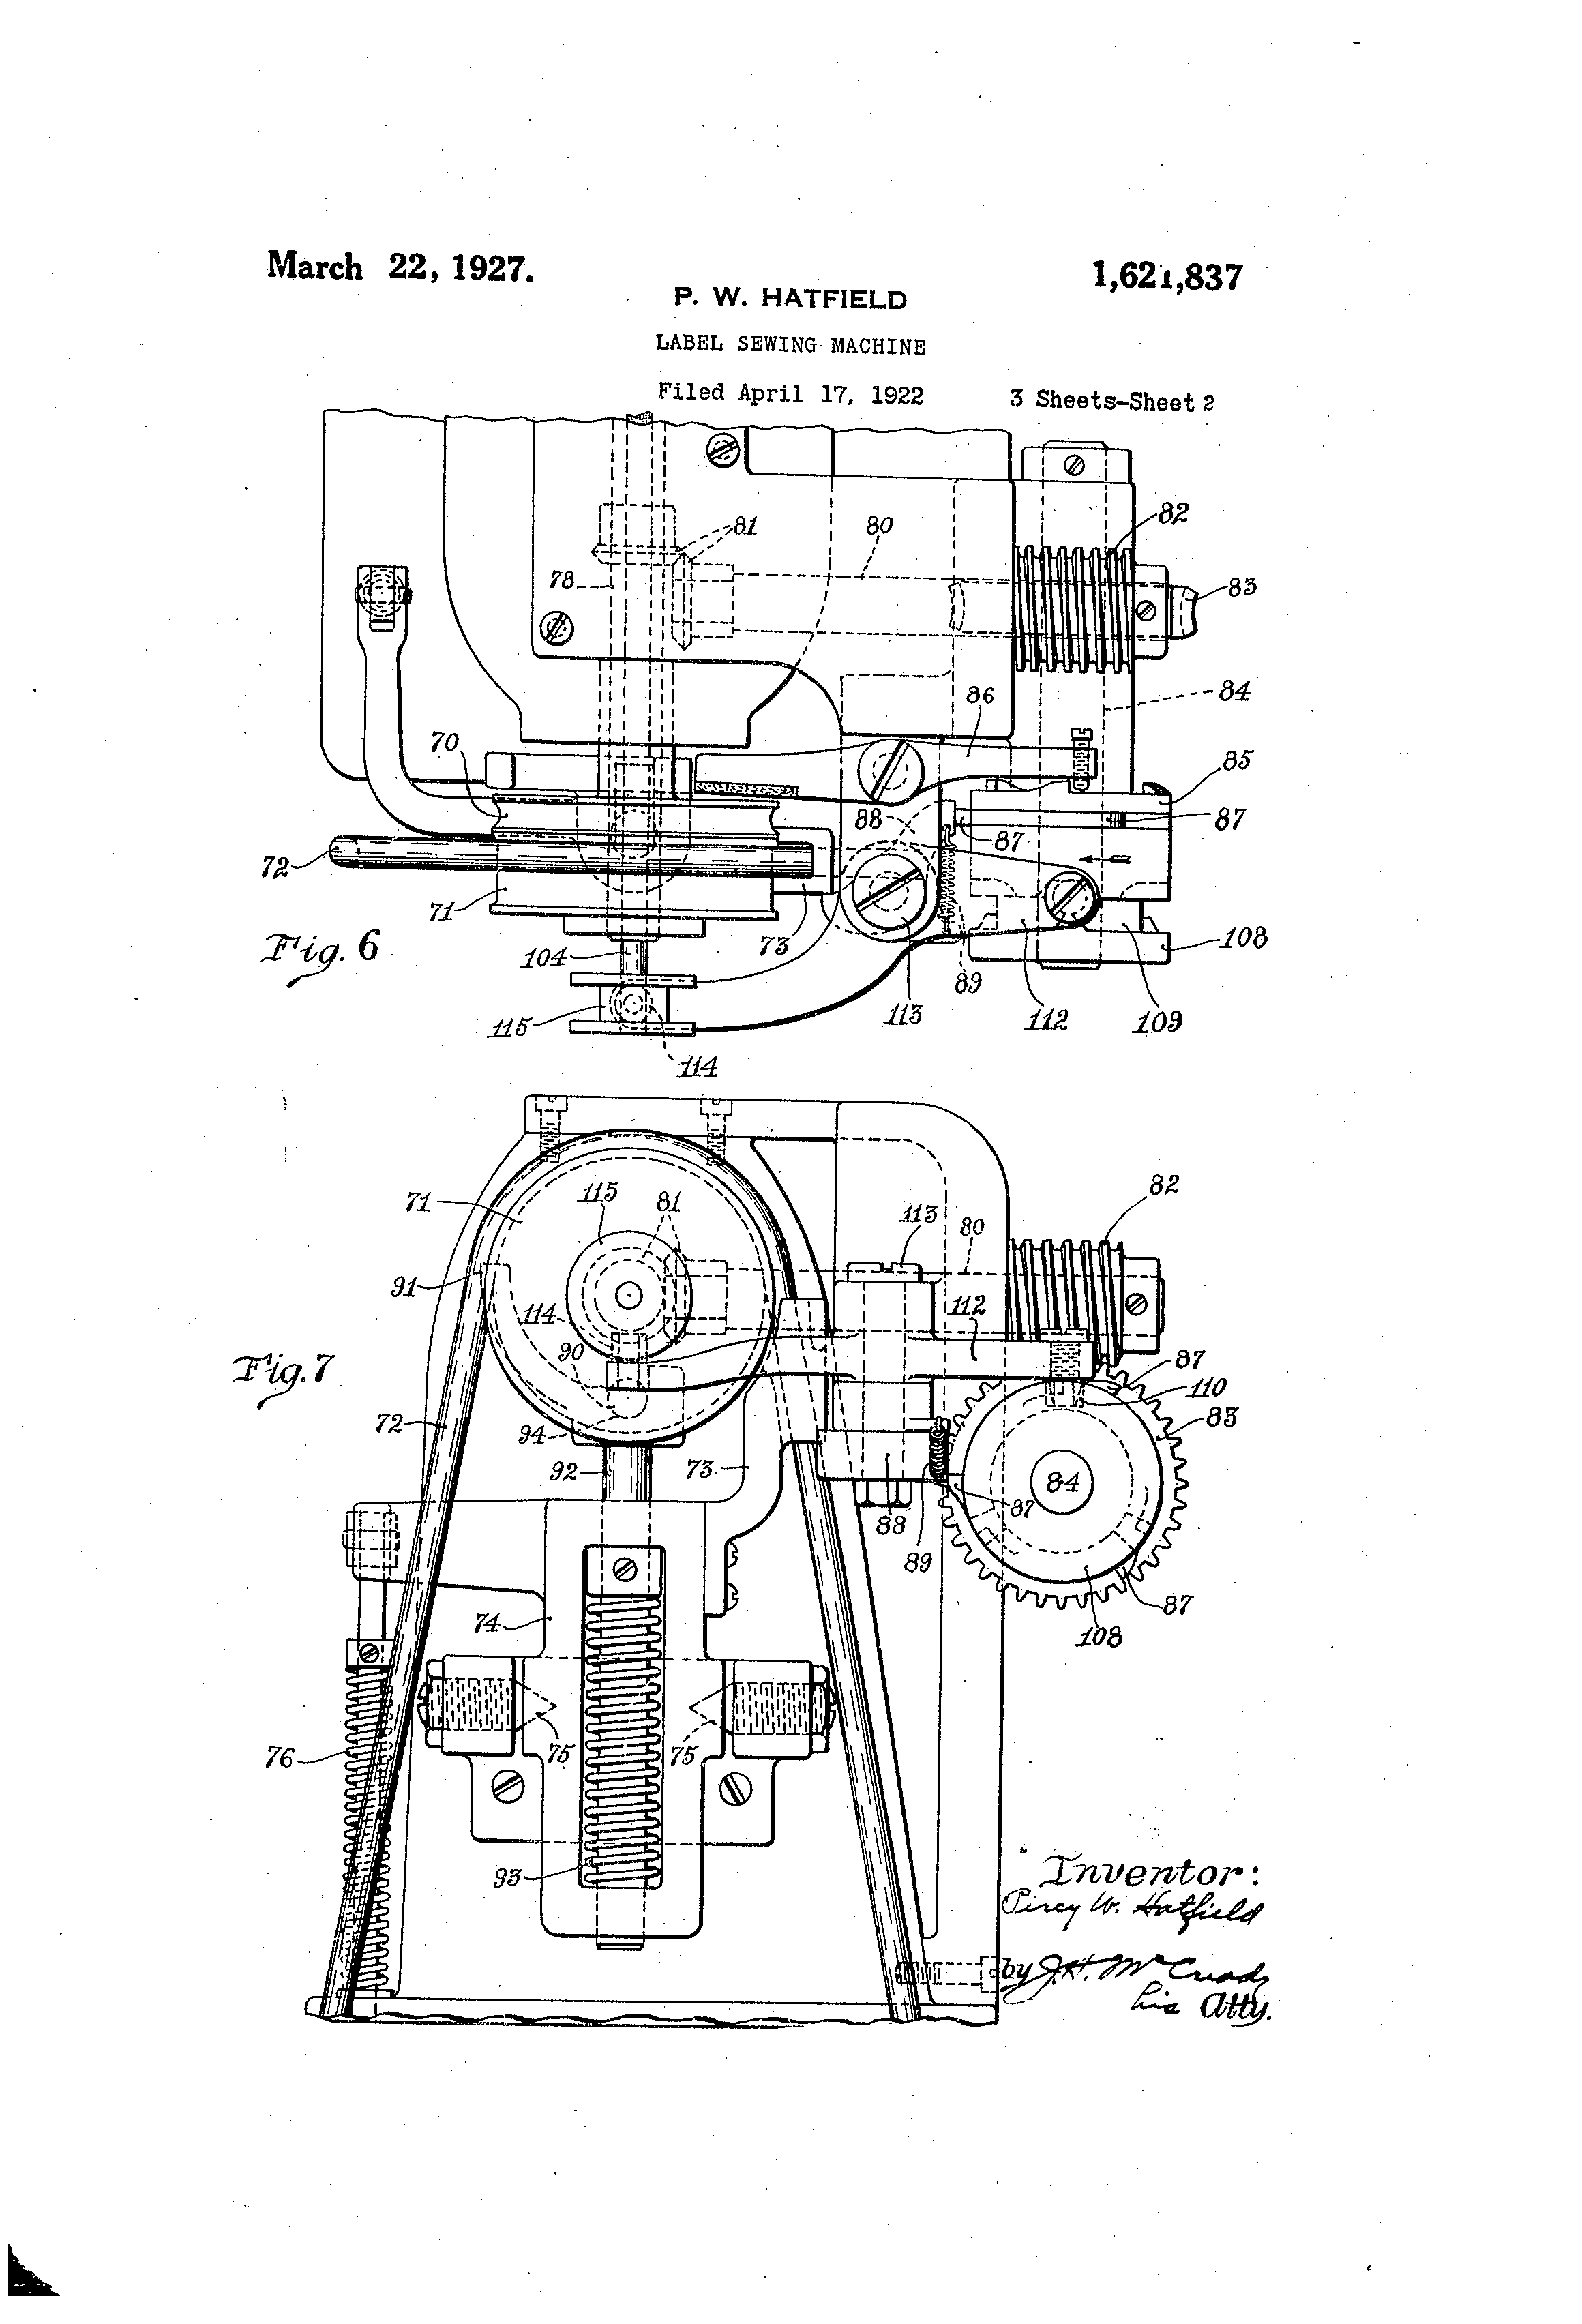 This is an image of Exceptional Sewing Machine With Label